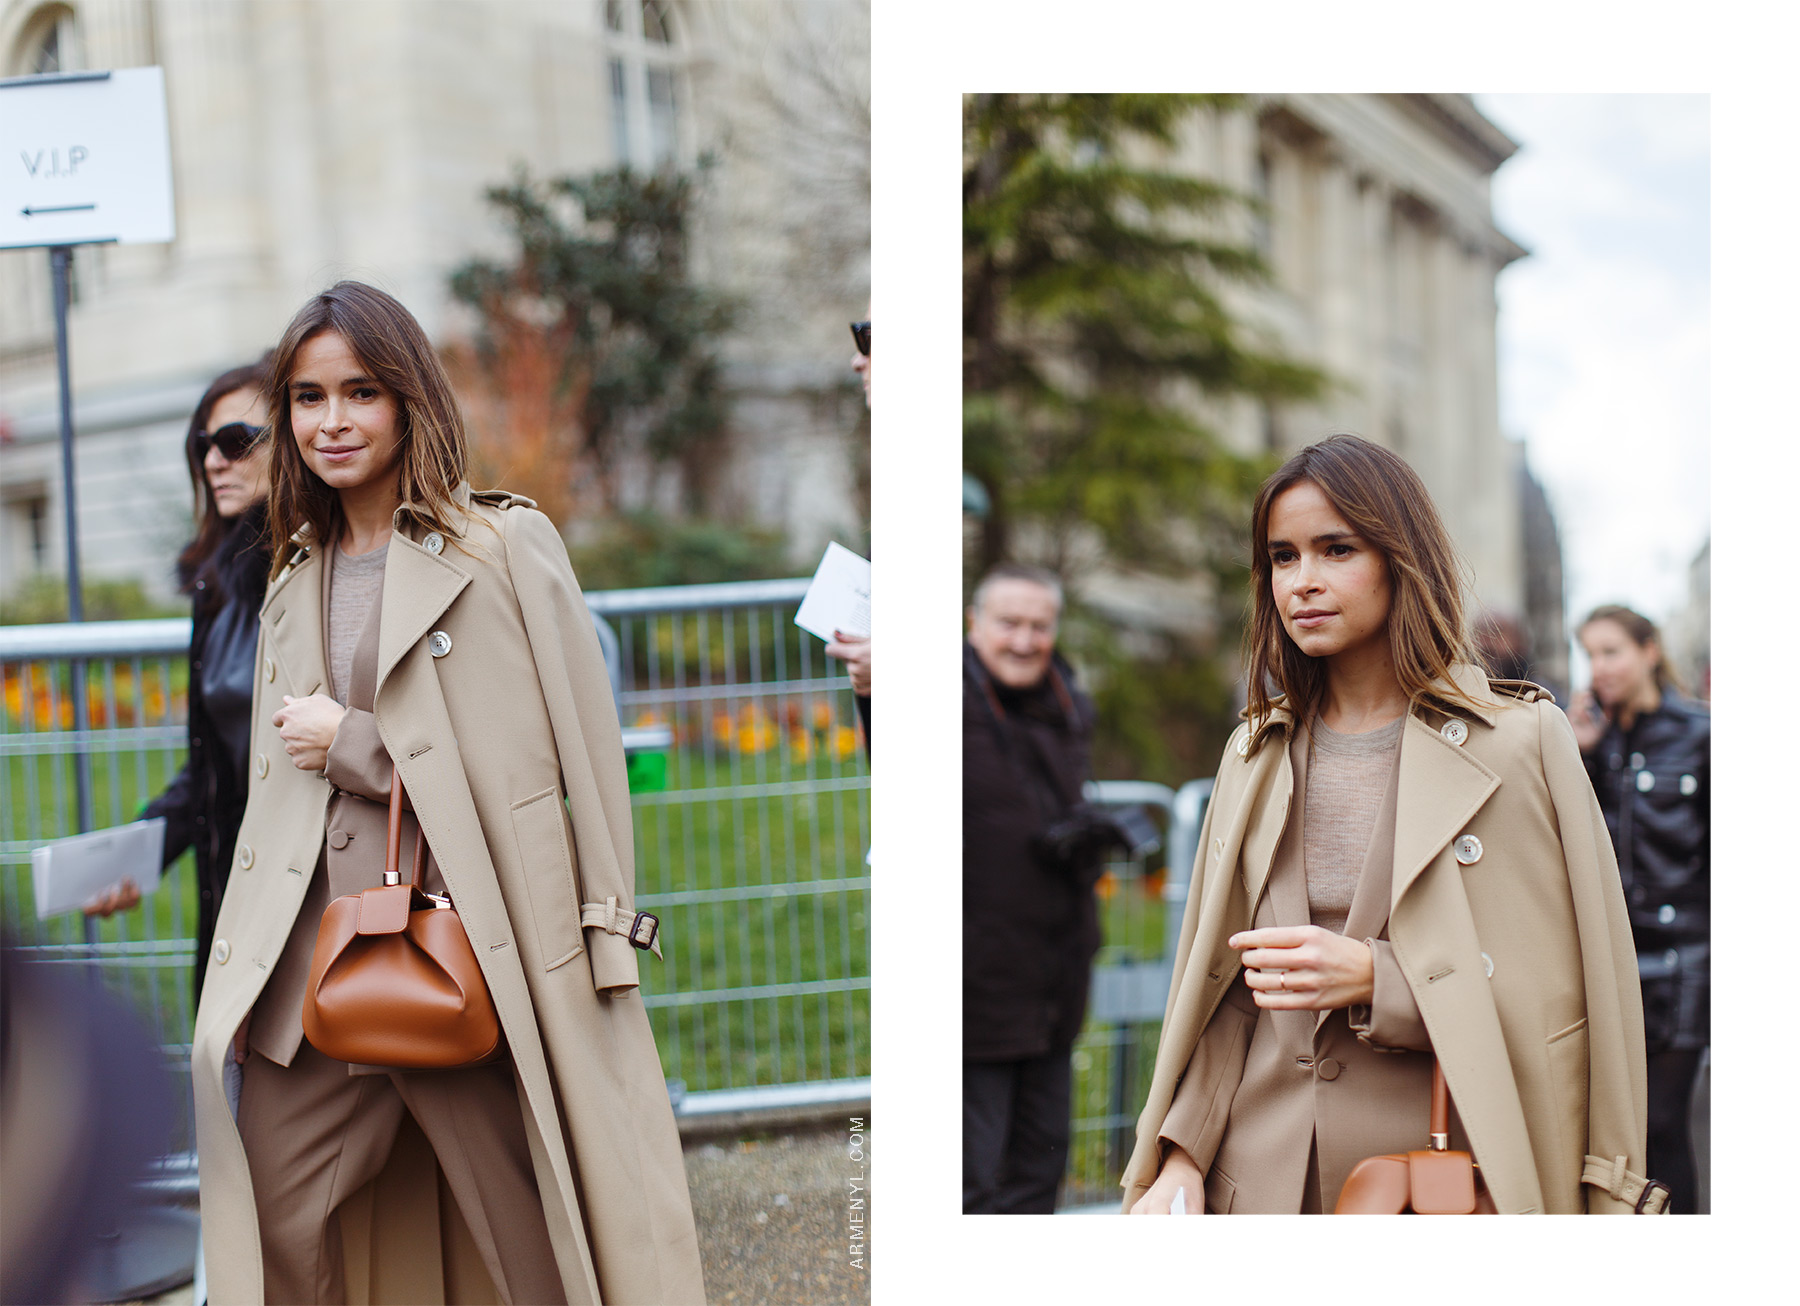 street-style-brown-monochrome-look-winter-miroslava-duma-photographed-by-armenyl-com